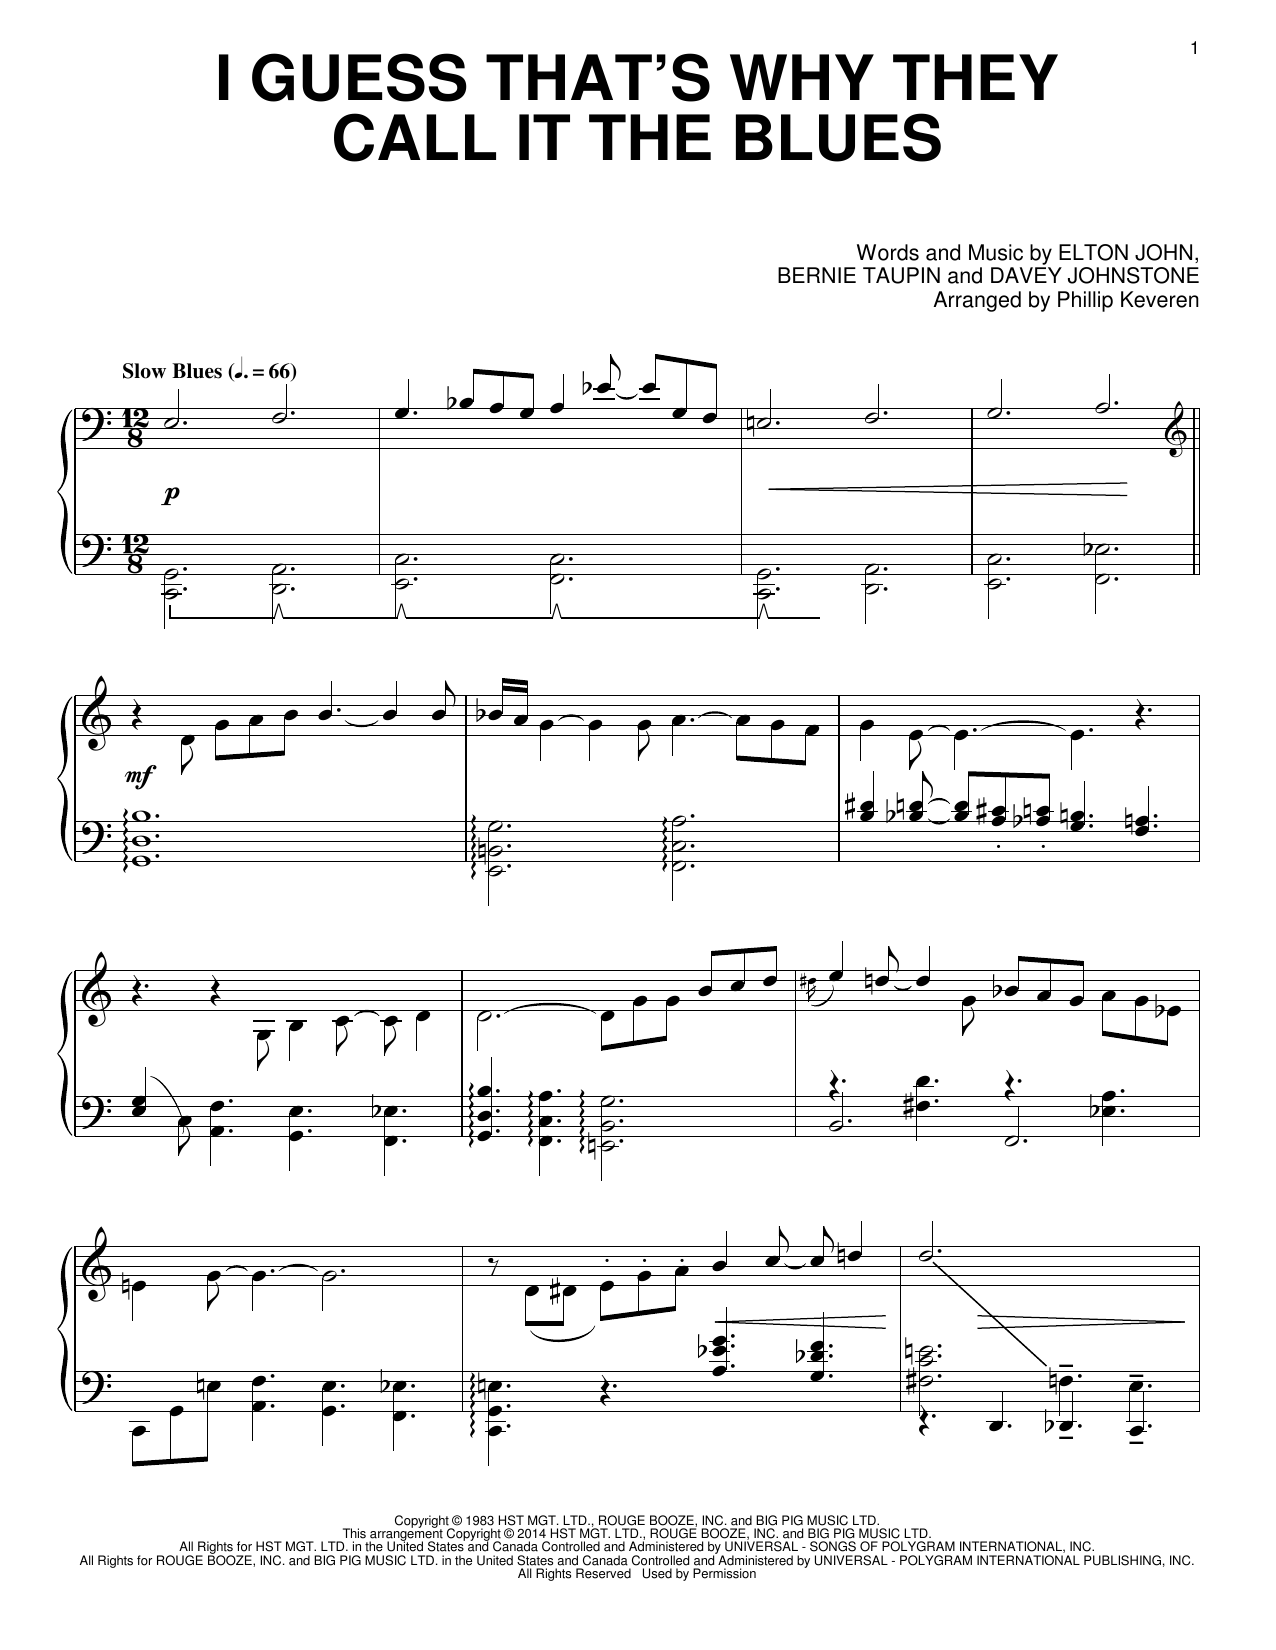 Elton John I Guess That's Why They Call It The Blues [Classical version] (arr. Phillip Keveren) sheet music notes and chords. Download Printable PDF.